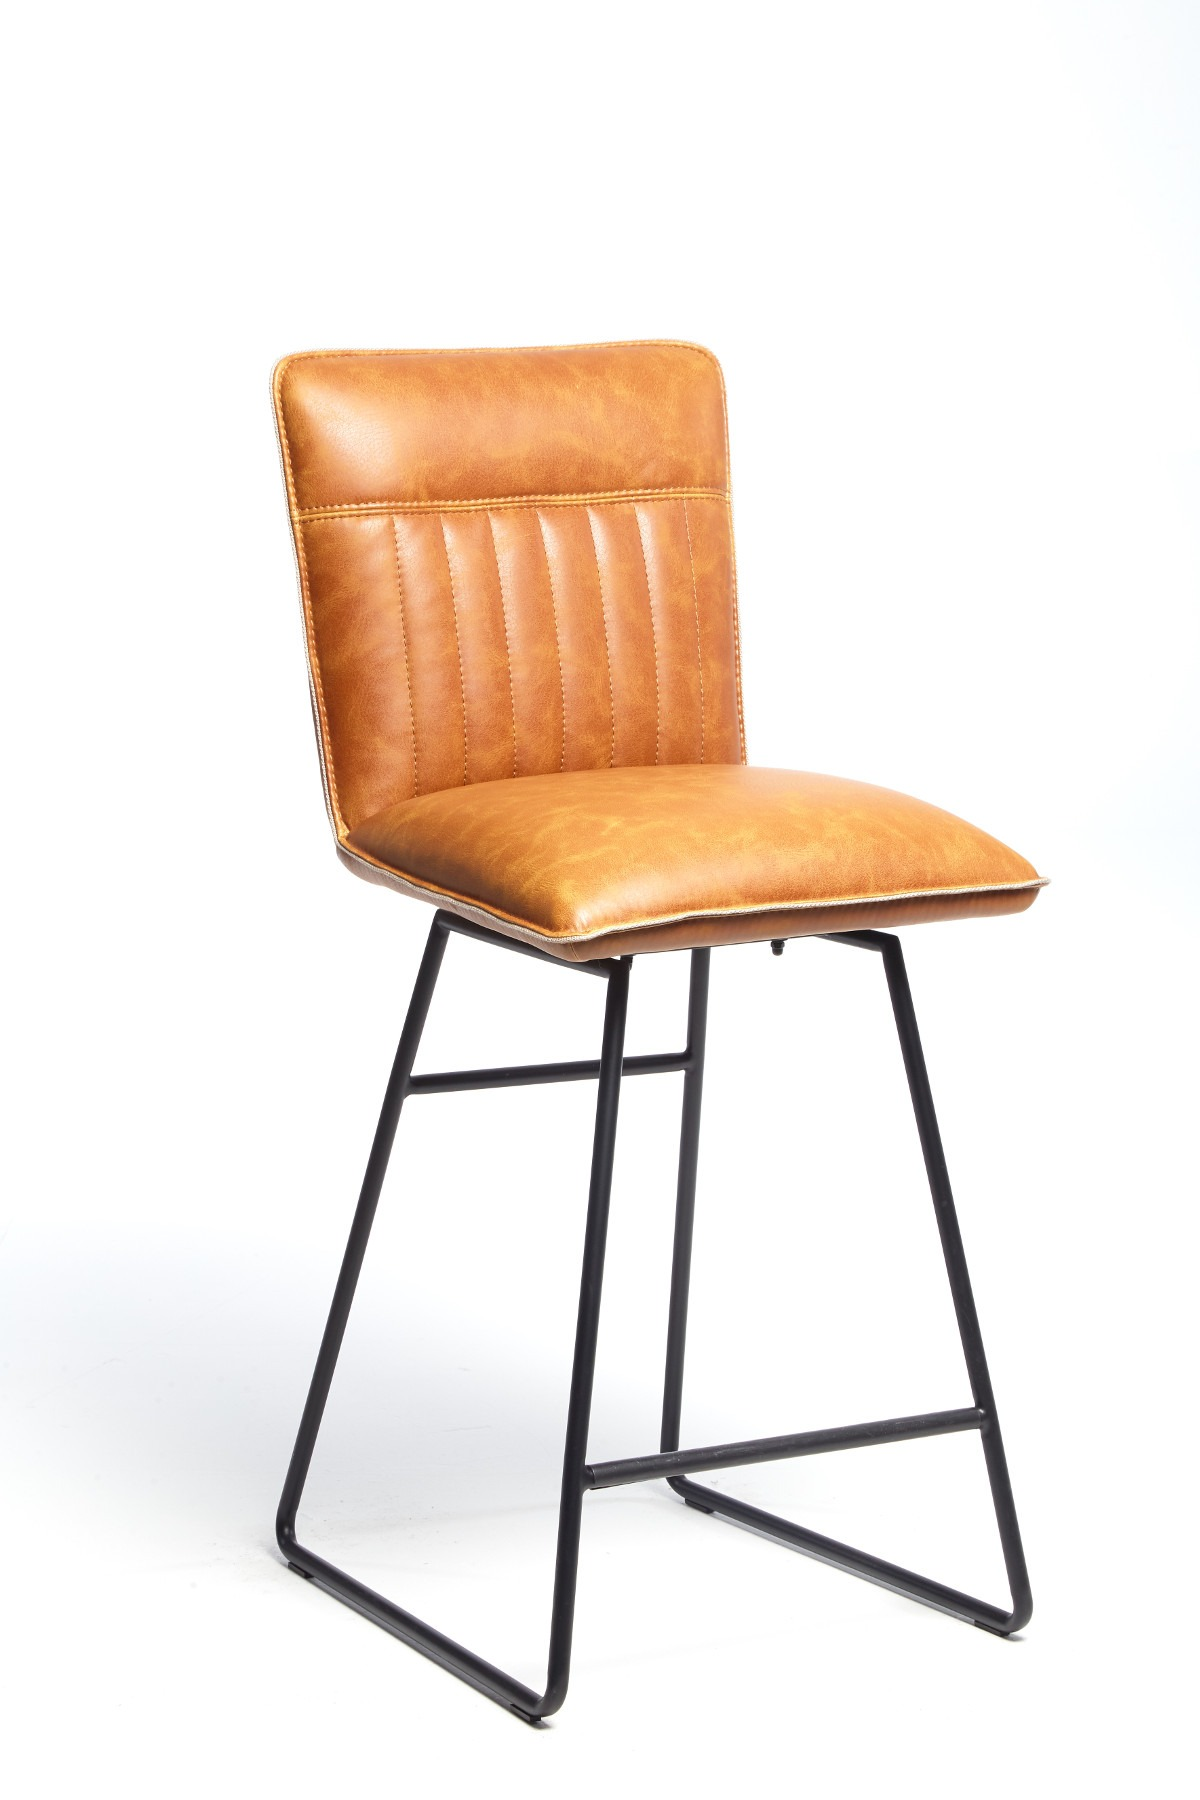 METRO TAN BAR STOOL - ANGLE DETAIL